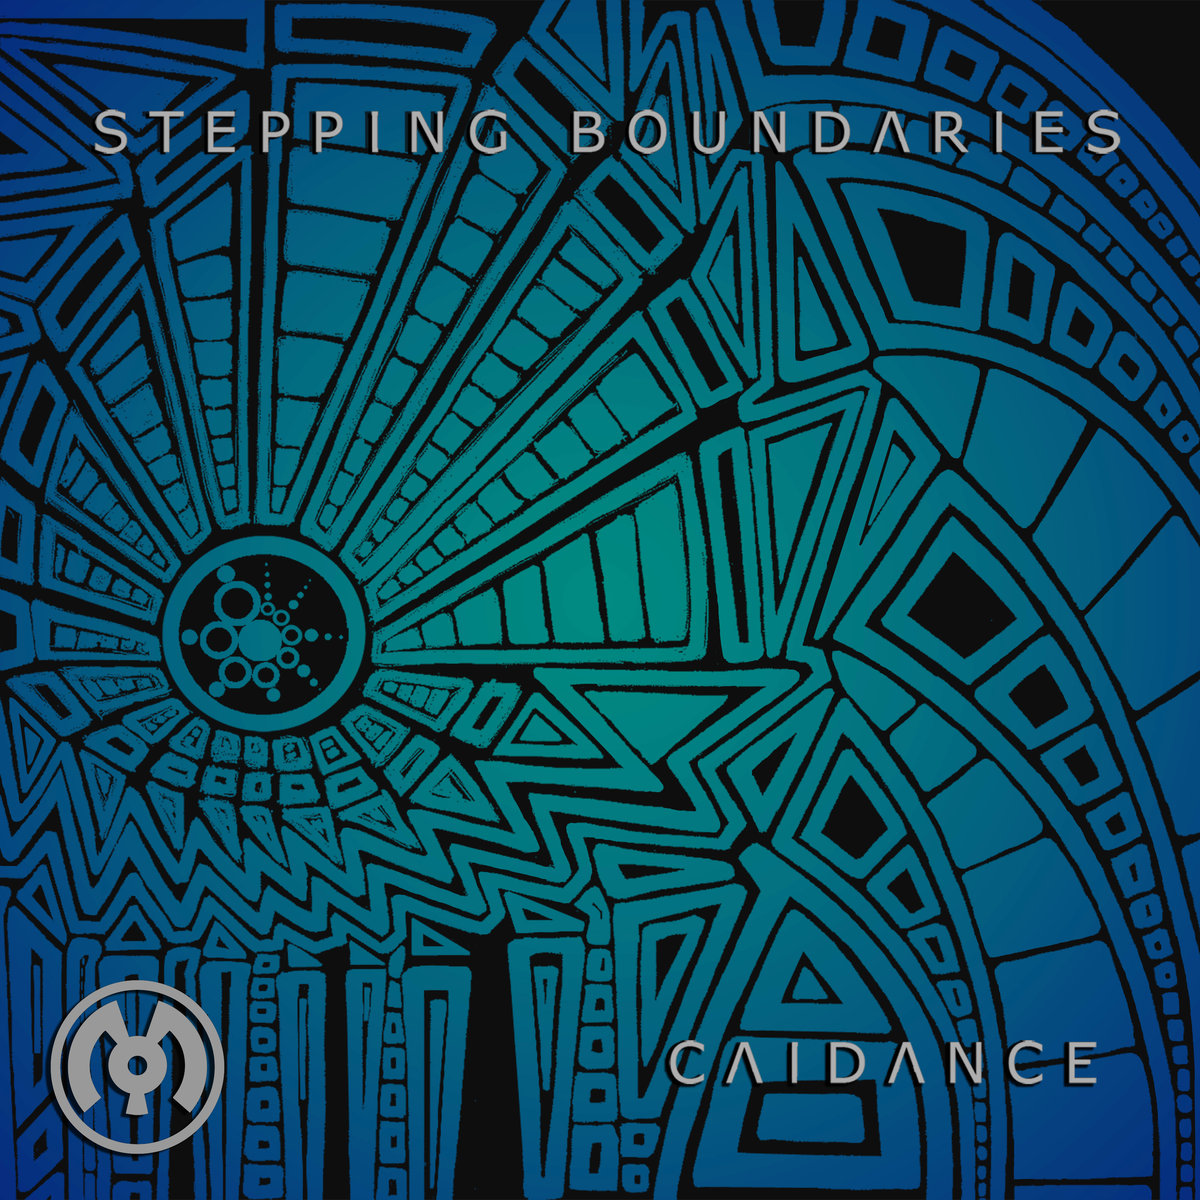 Caidance - Lavish @ 'Stepping Boundaries' album (electronic, dubstep)